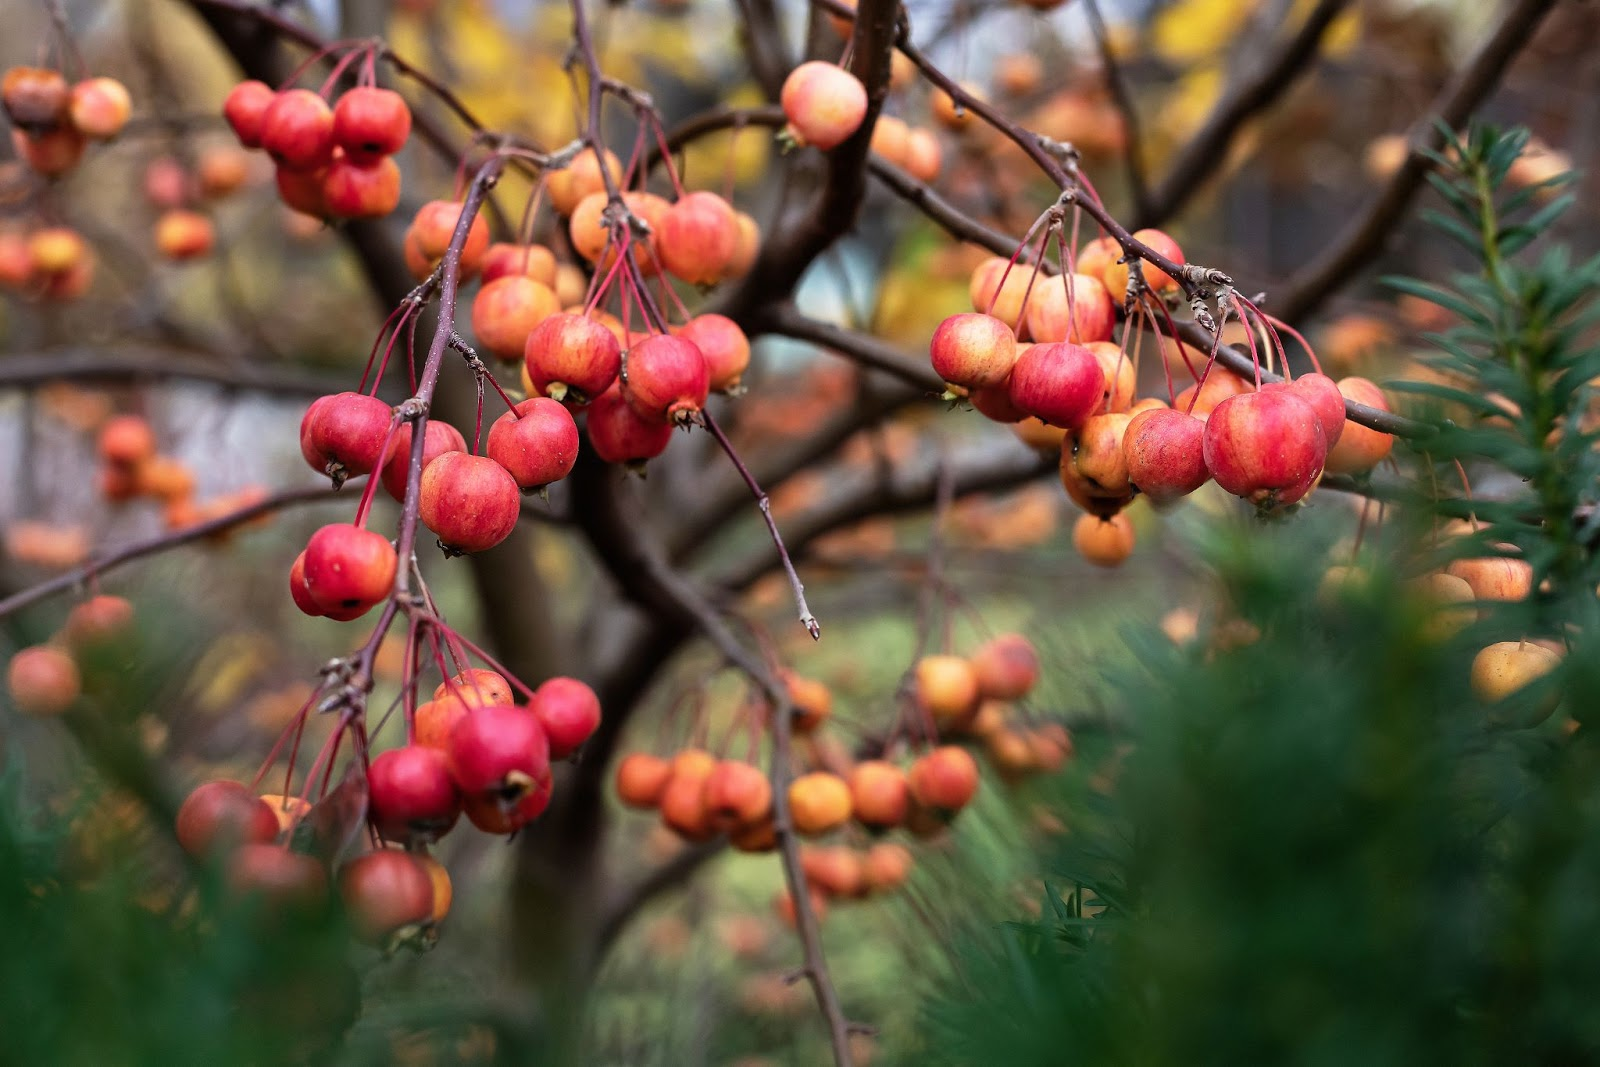 Attractive small red-orange mini crabapples hanging on a bare-branched crabapple tree in winter.